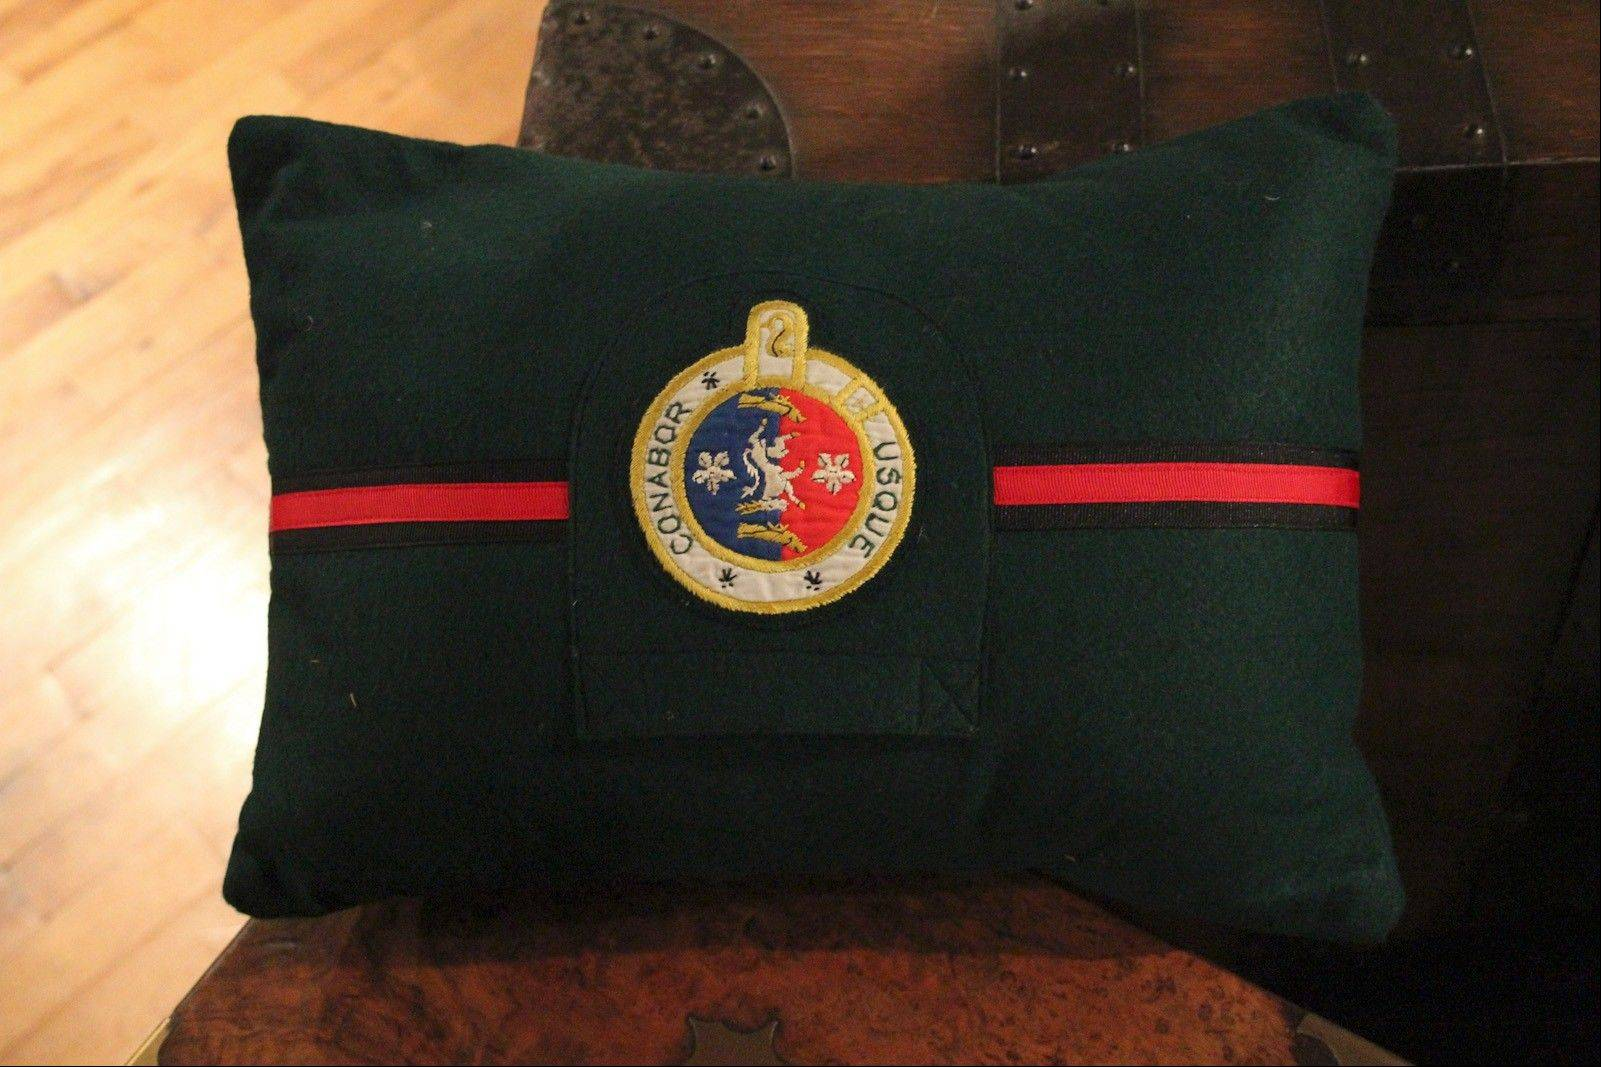 Fanshawe Blaine's vintage school-blazer-pocket pillow.